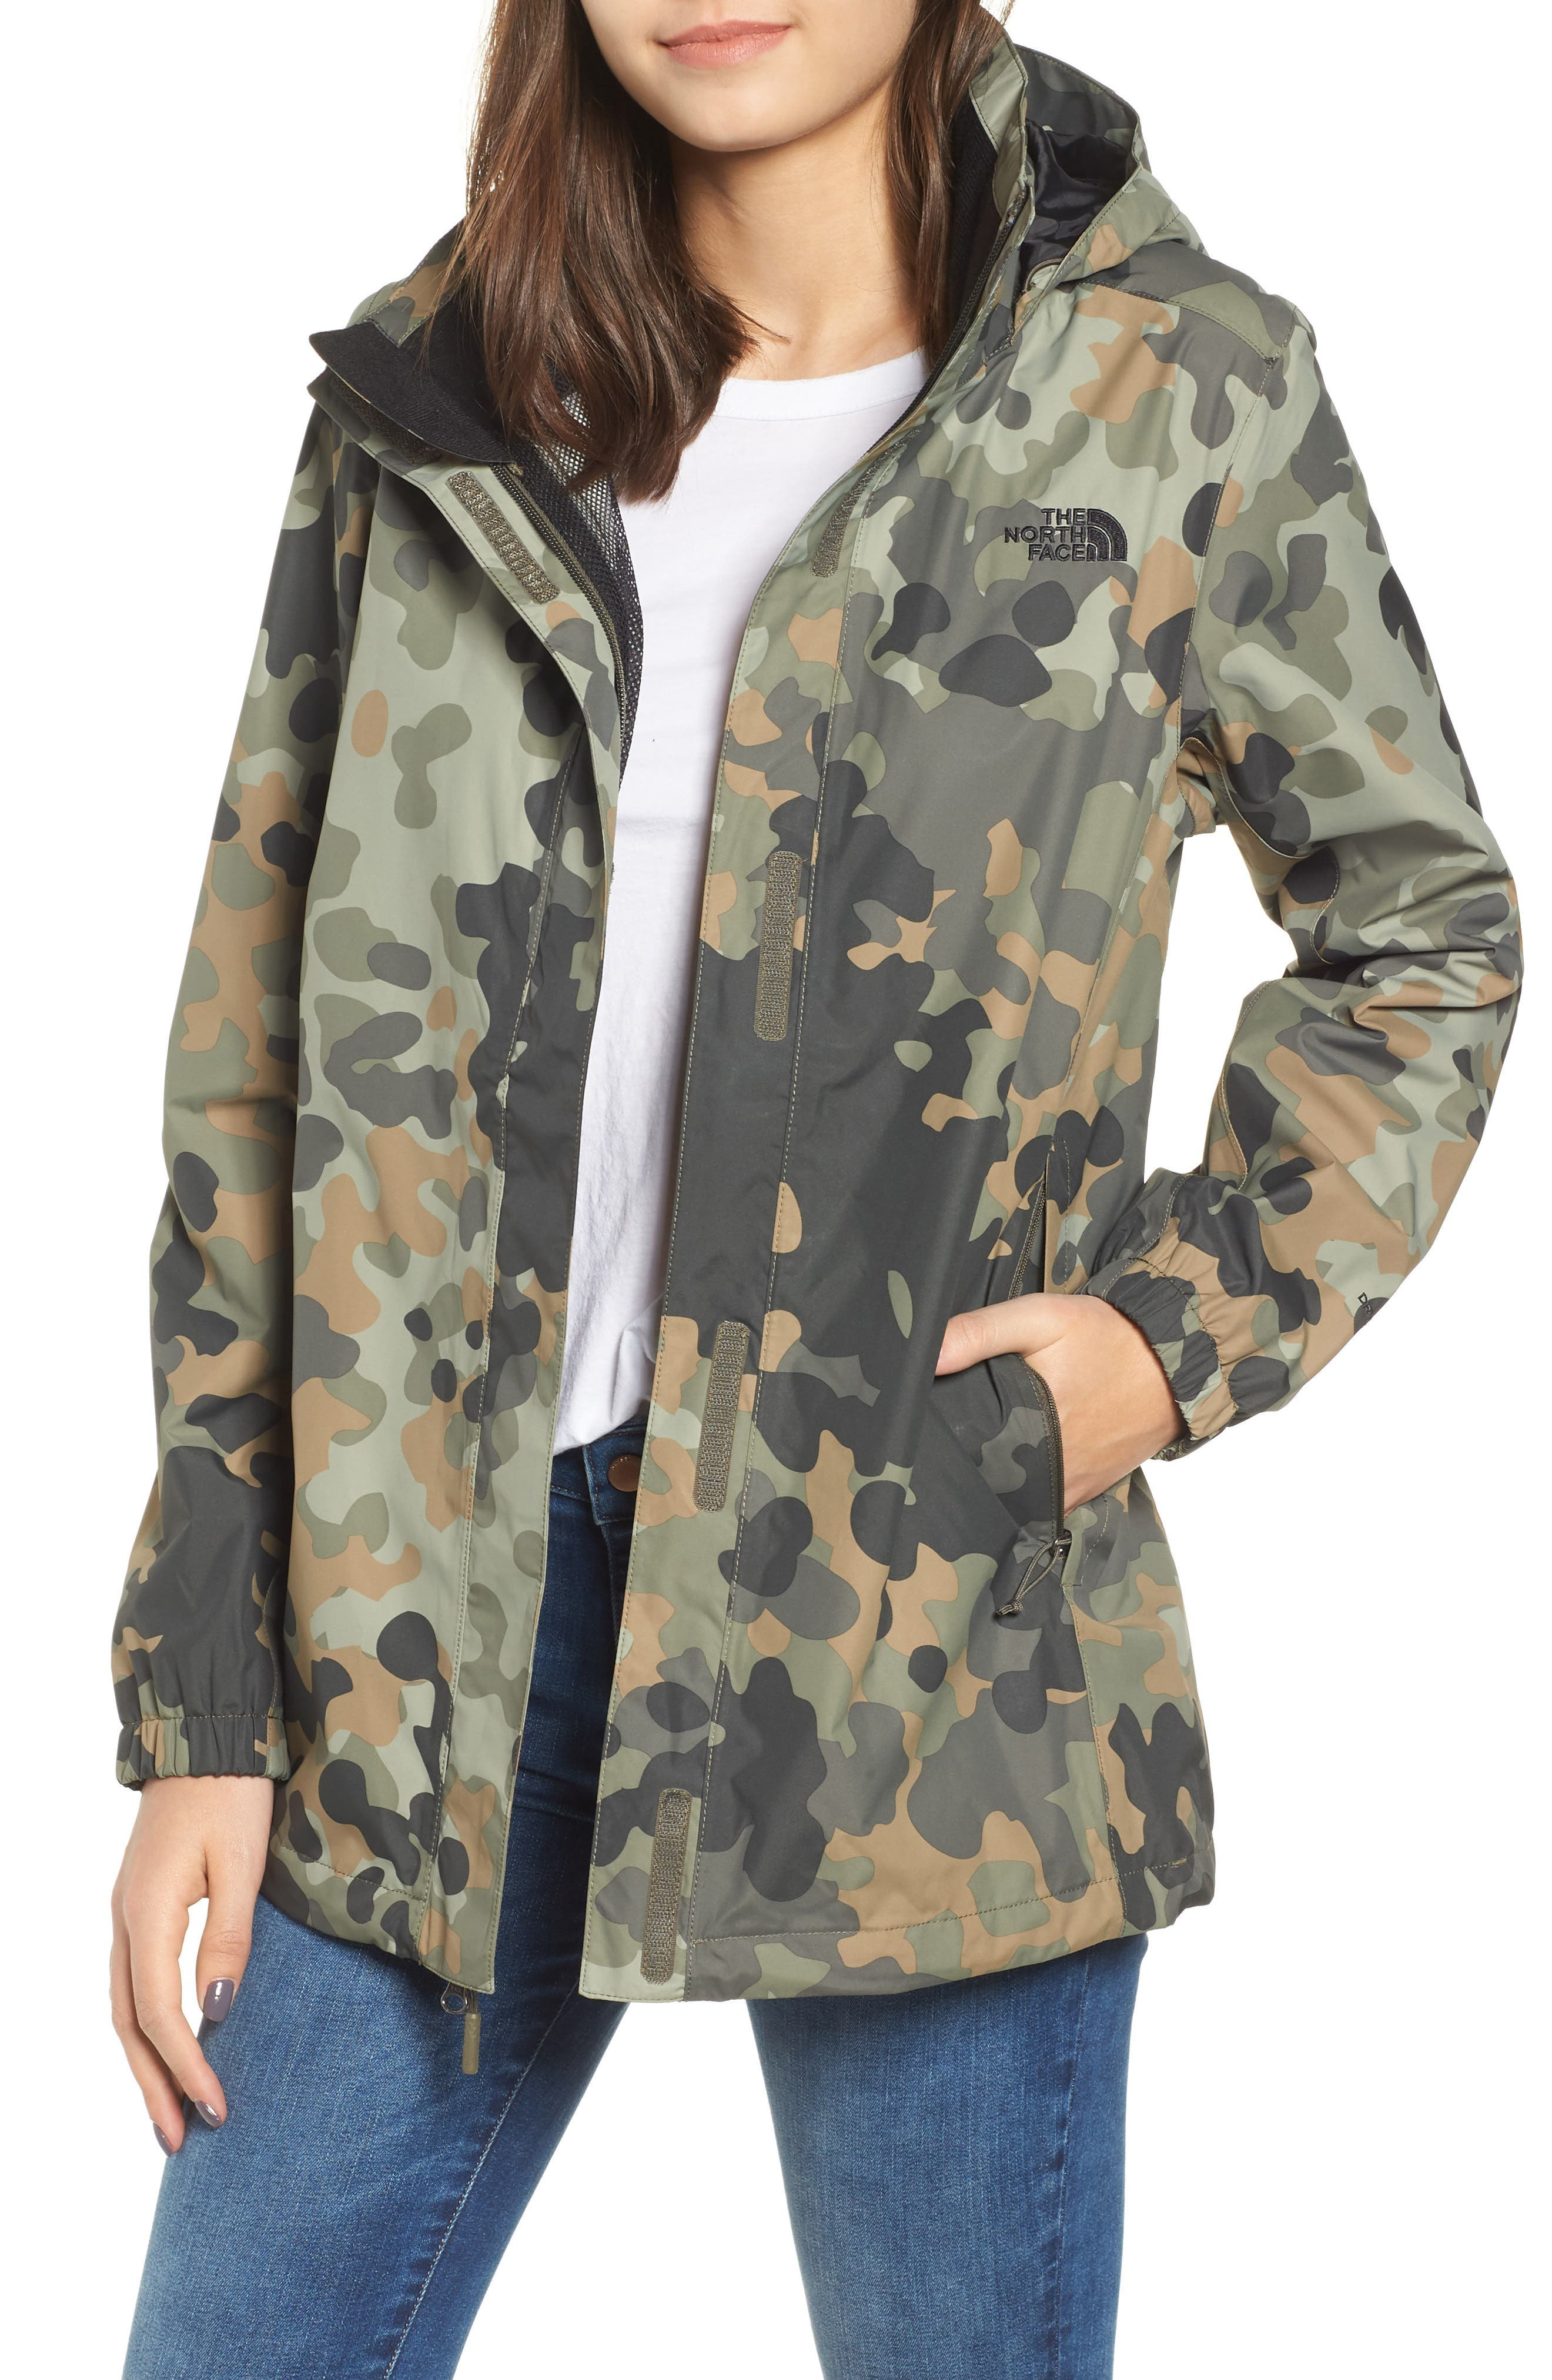 THE NORTH FACE Resolve Waterproof Parka, Main, color, NEW TAUPE GREEN MACROFLECK